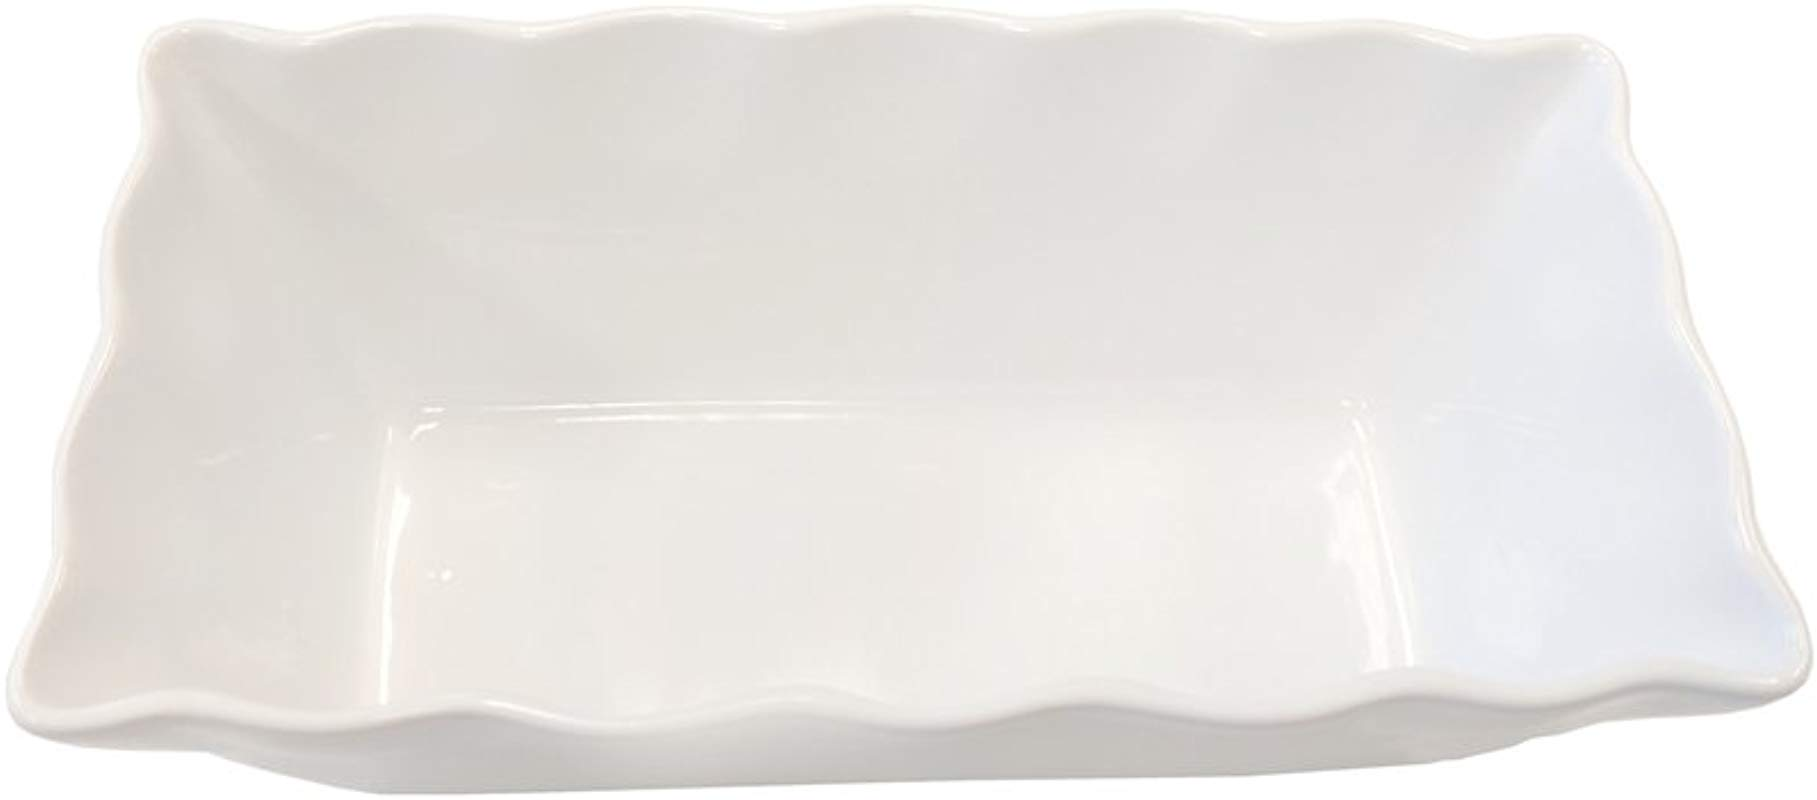 Cook Pro White Ruffled Stoneware Bakeware Loaf Pan 9 5 X 4 5 X 3 25 Sturdy Ceramic That Is Lead And Cadmium Free